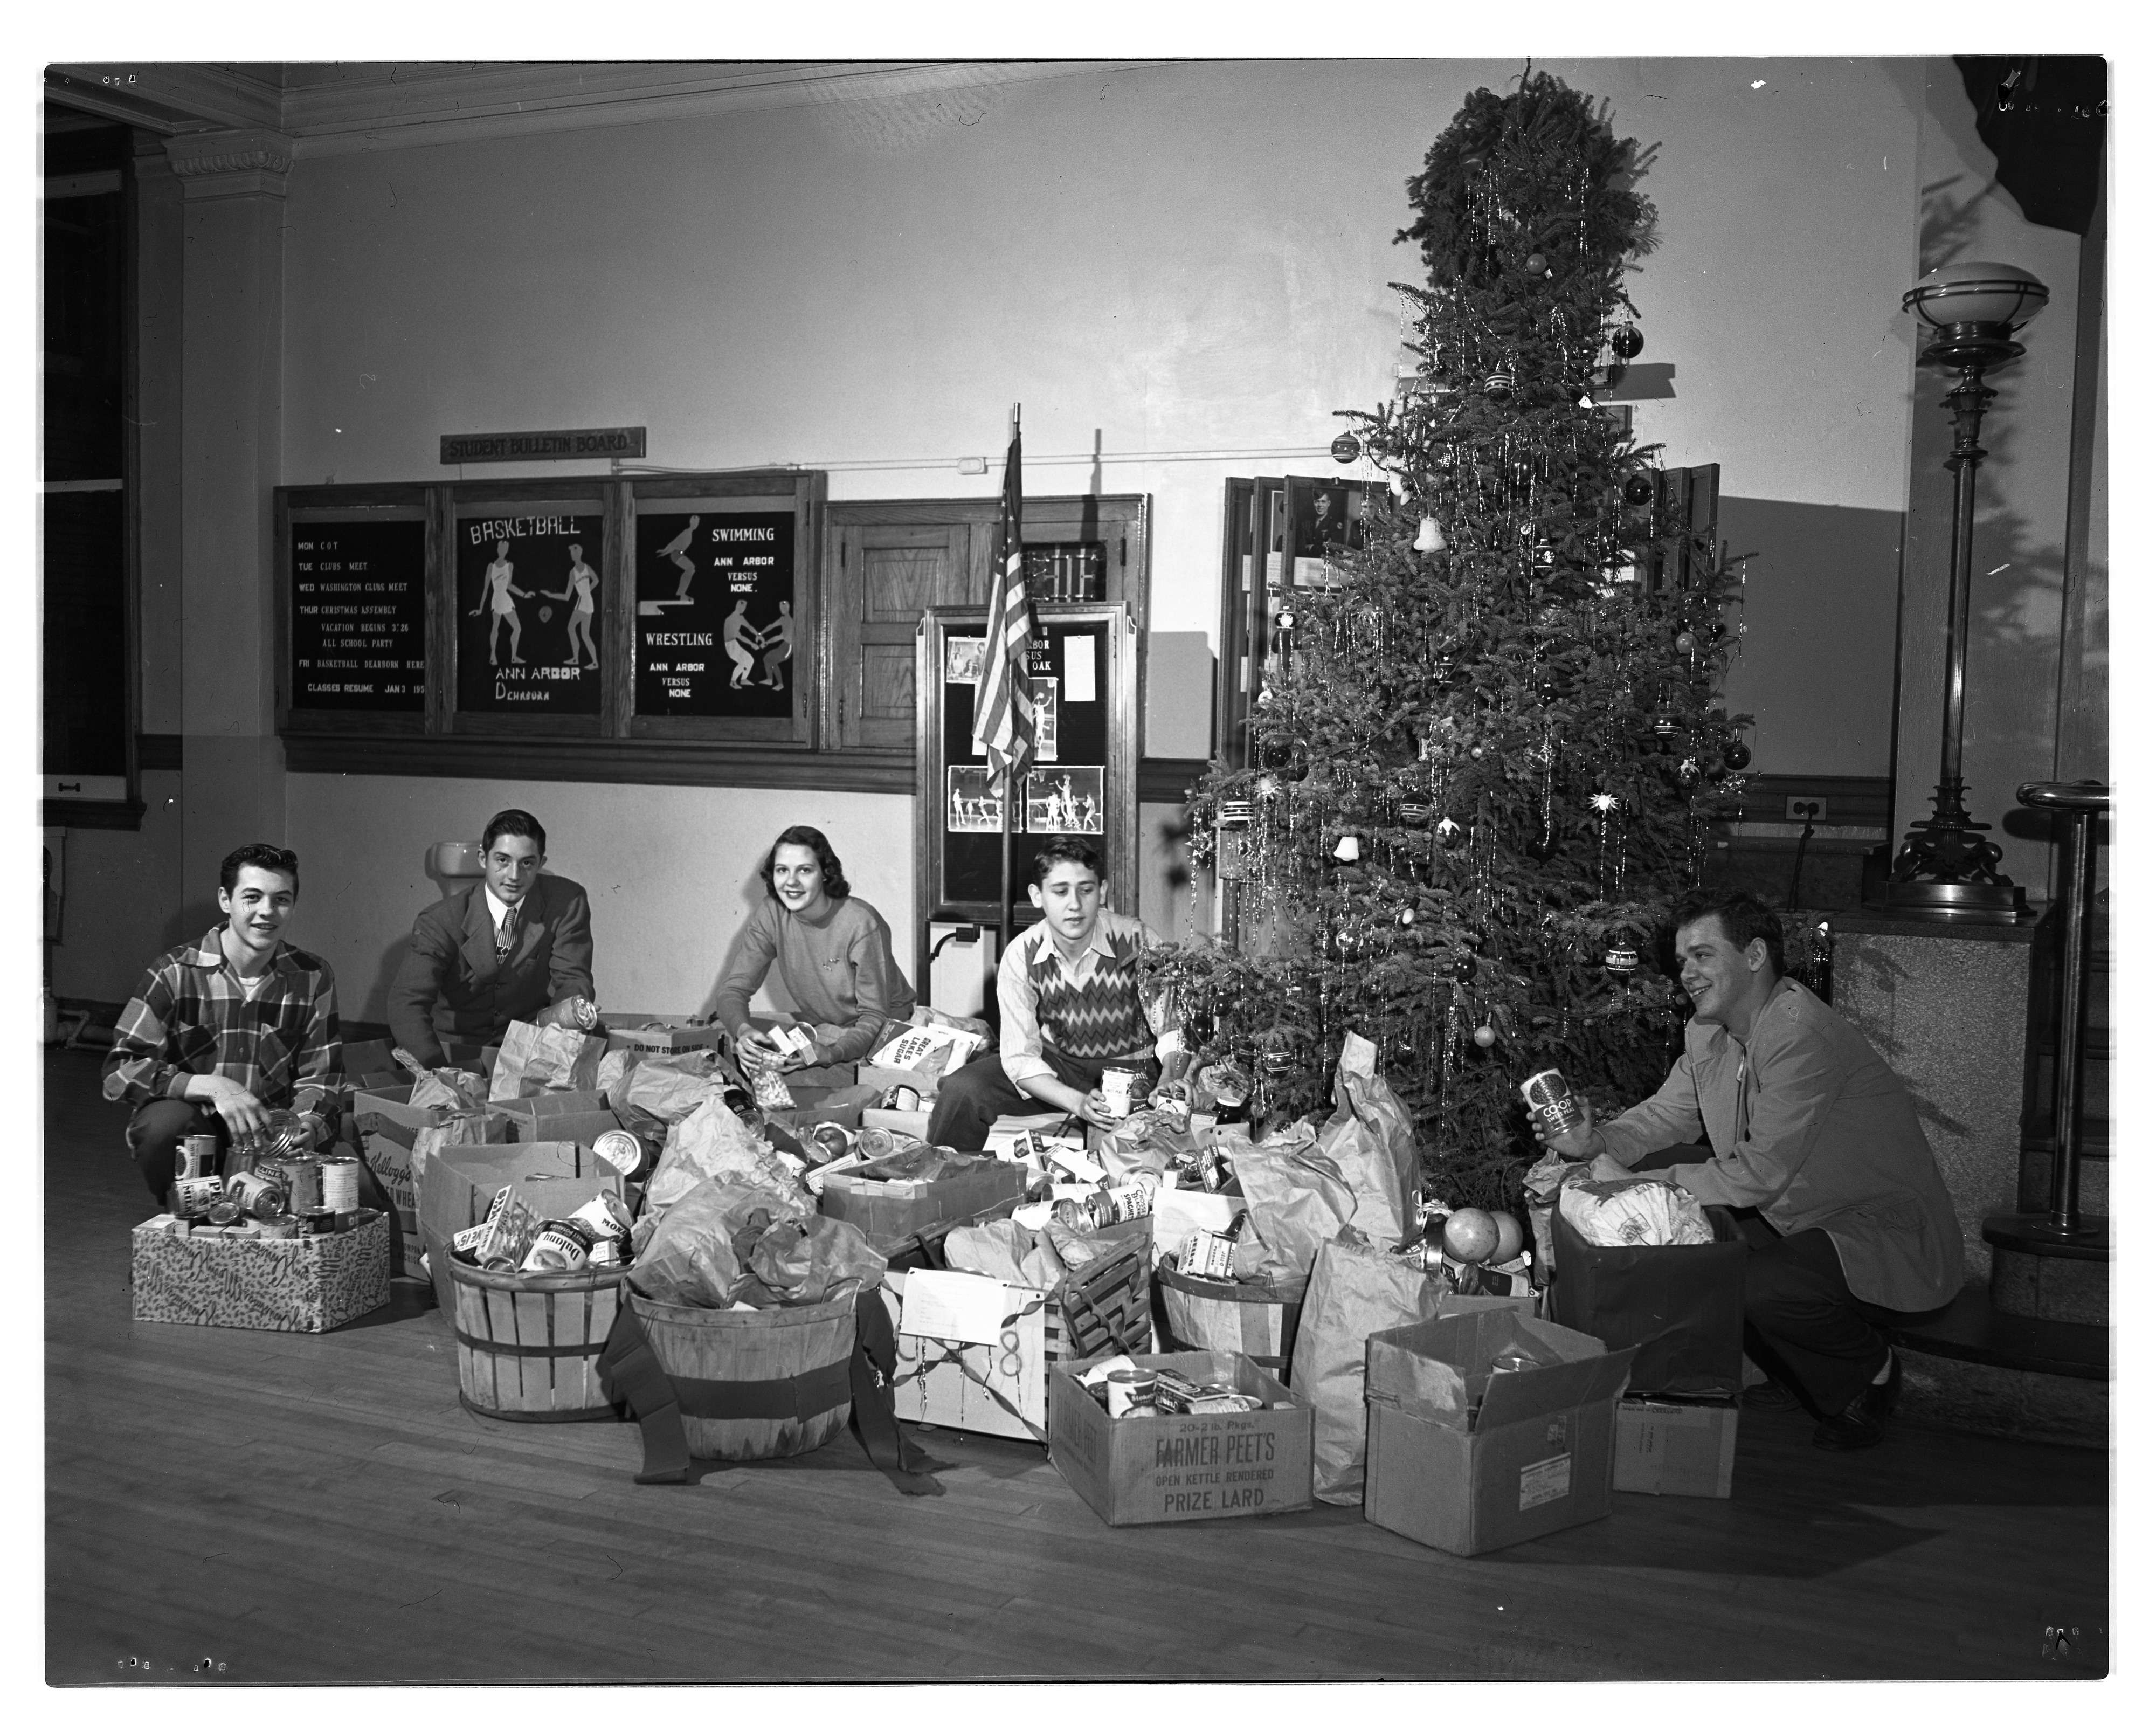 Ann Arbor High School Students Prepare Christmas Baskets For Needy, December 1949 image